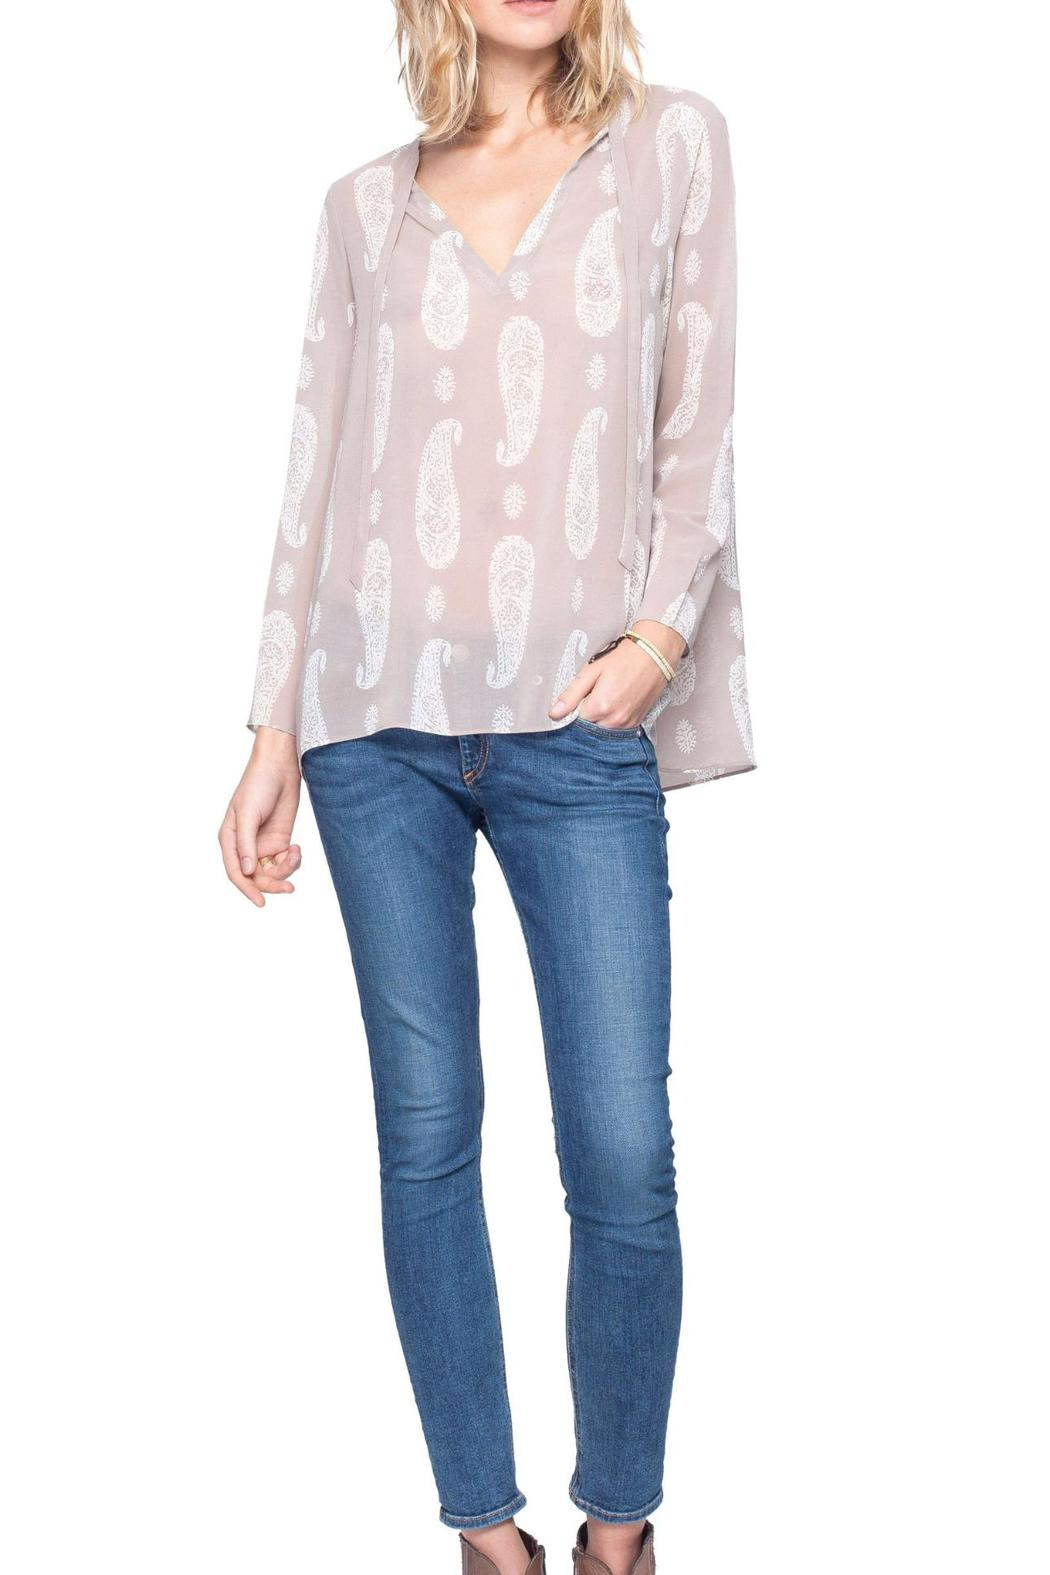 Gentle Fawn Paisley Print Top - Front Full Image